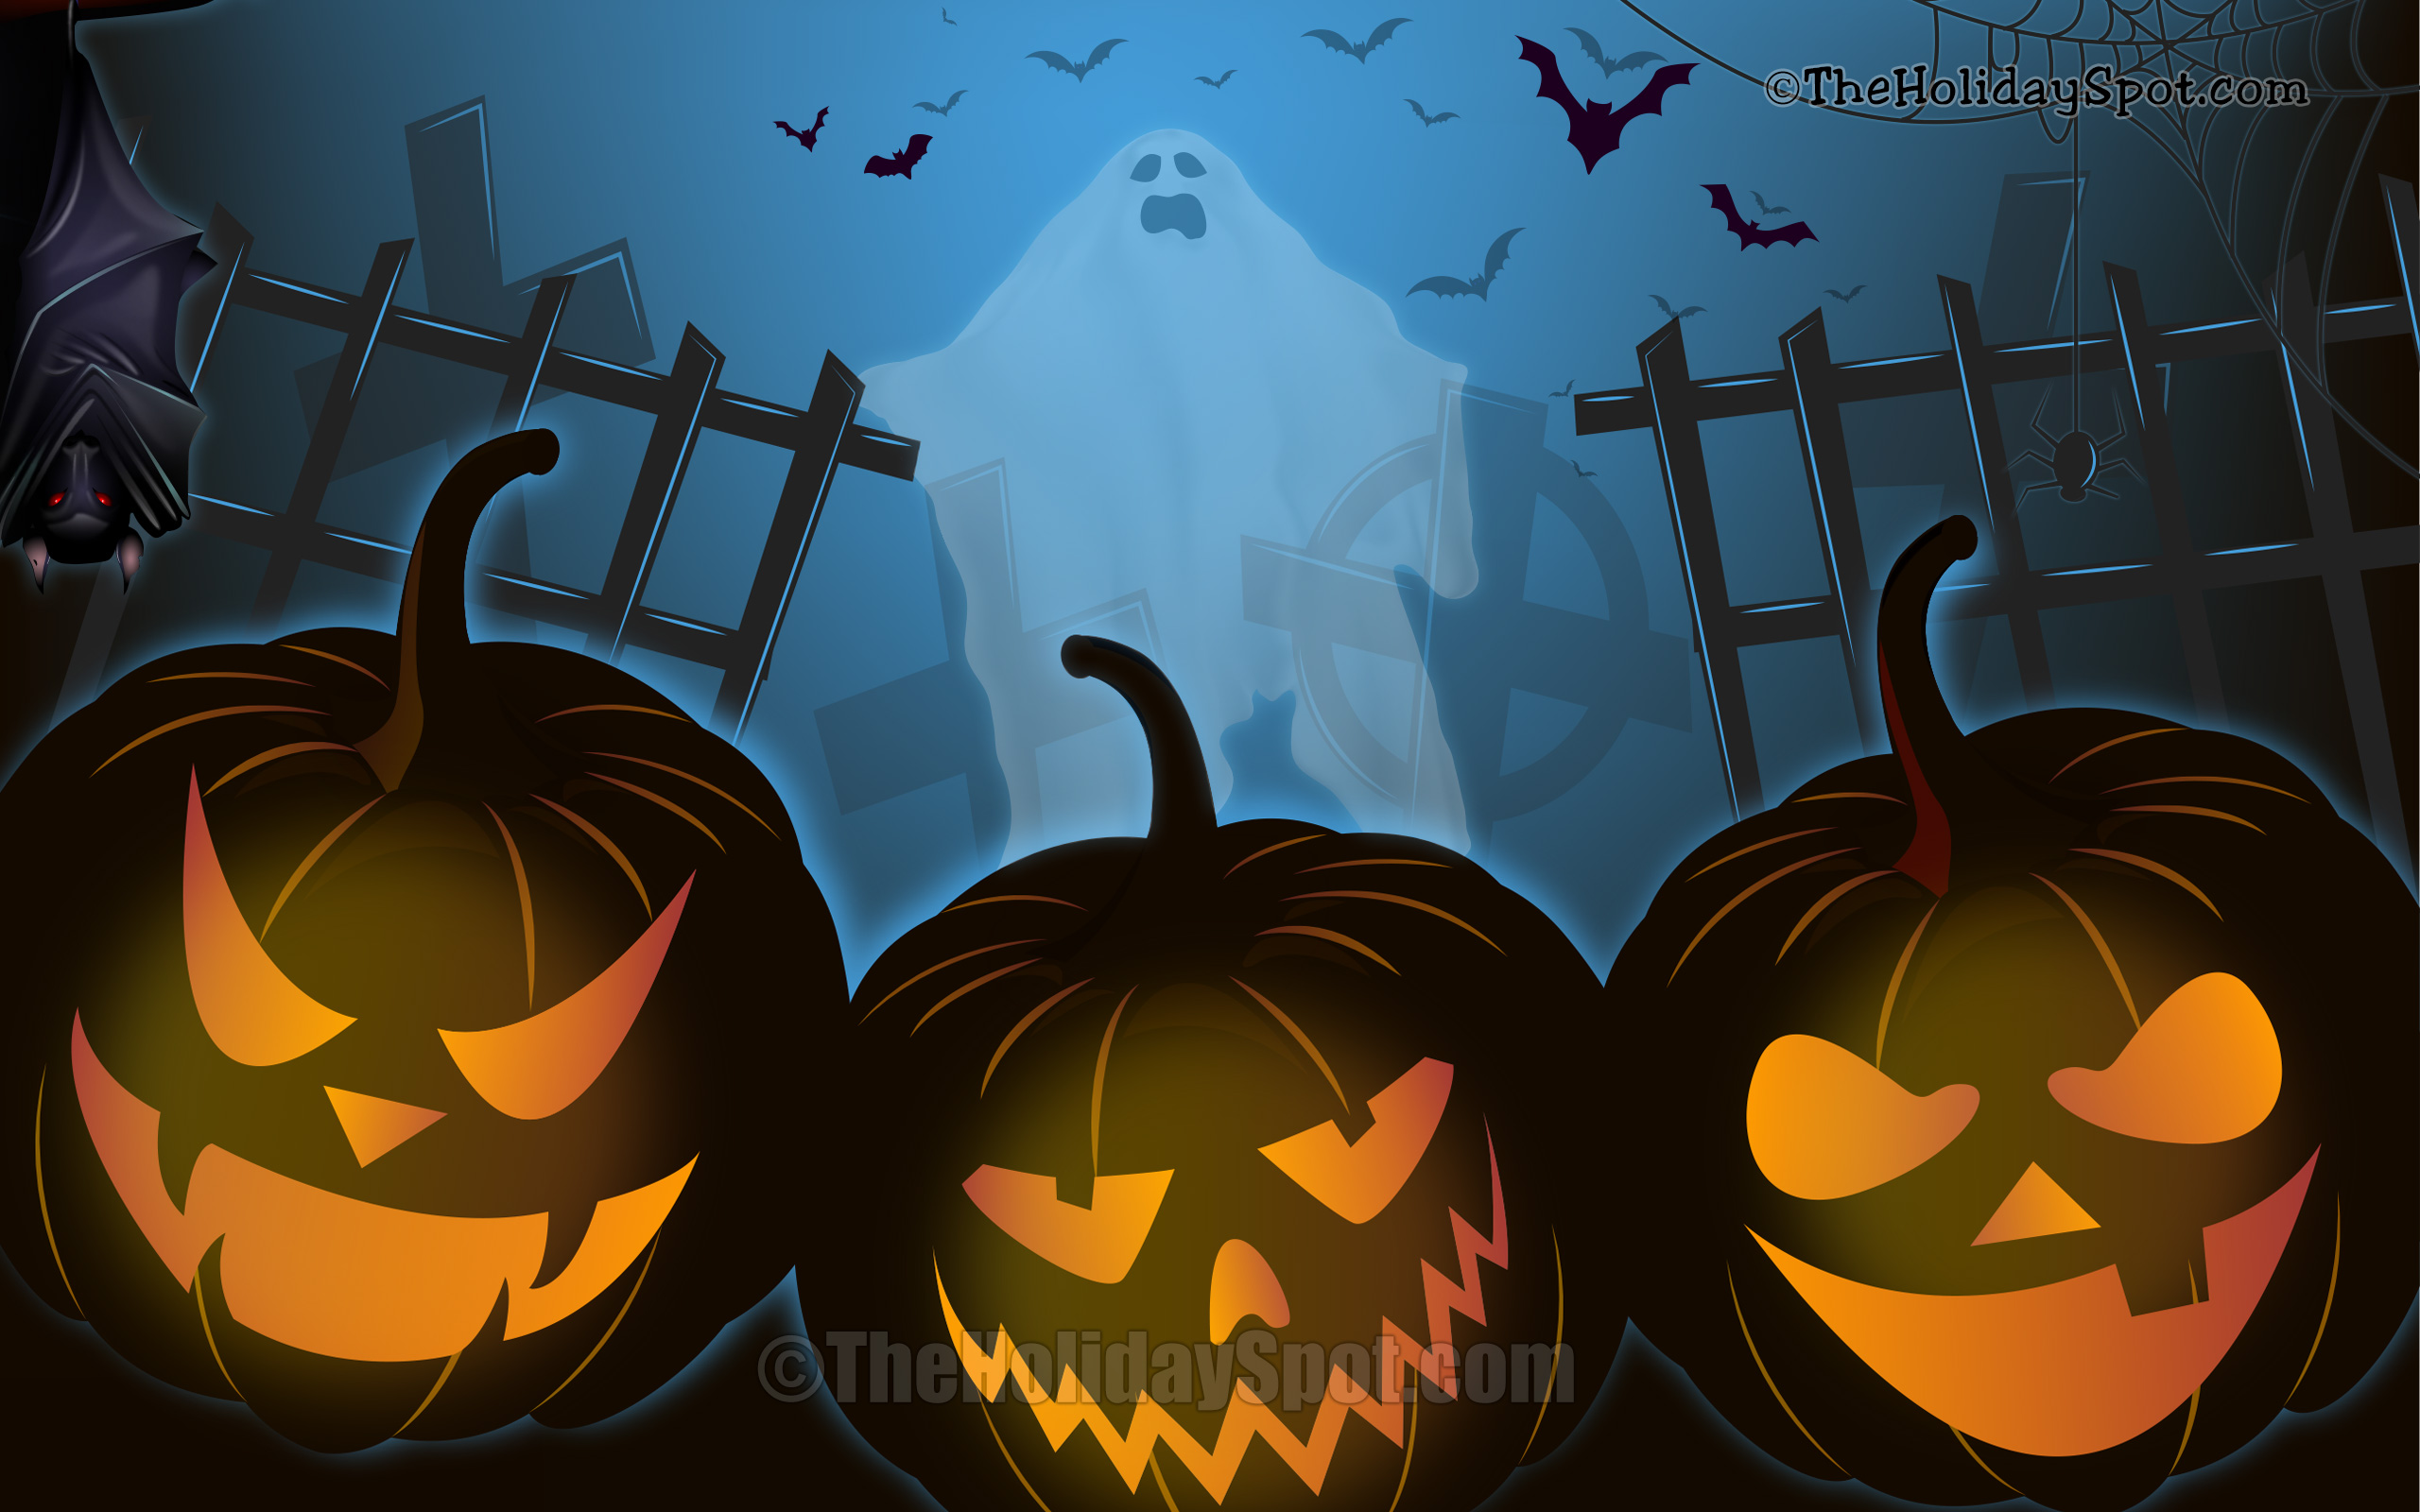 halloween wallpaper hd download | halloween desktop background